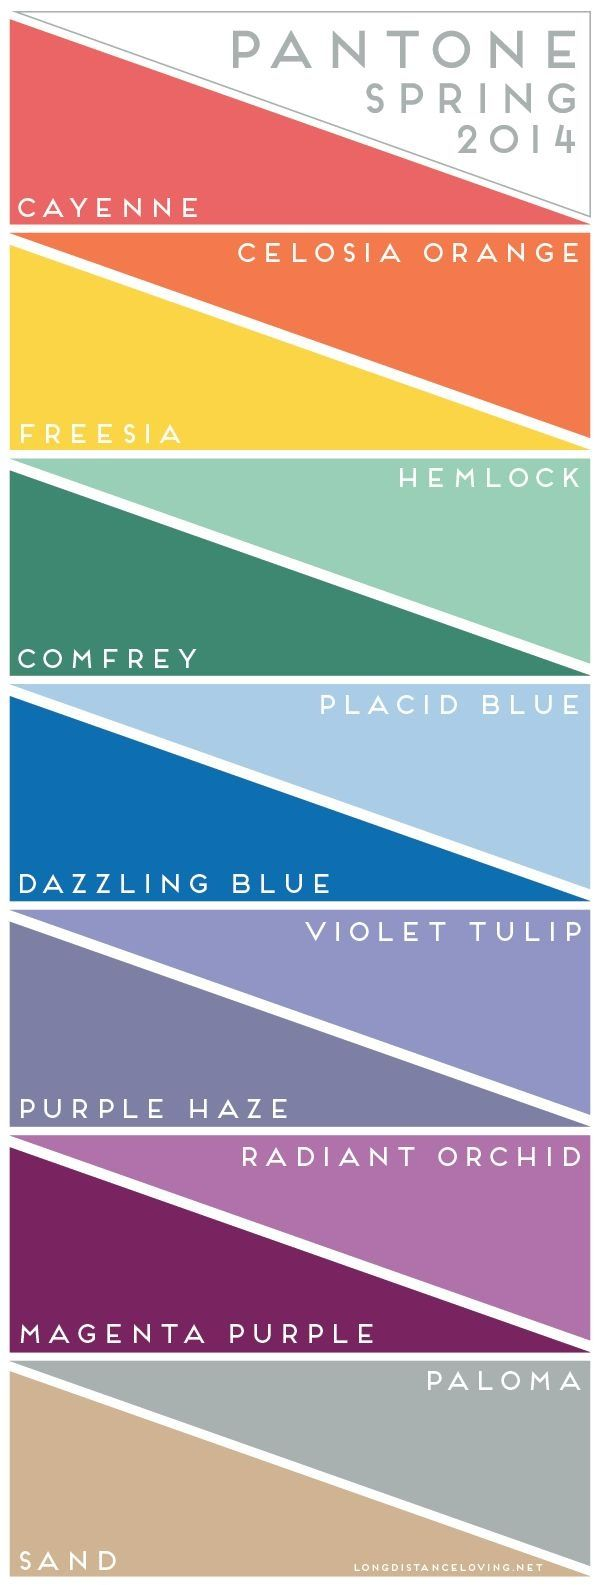 Pantone colors for 2014